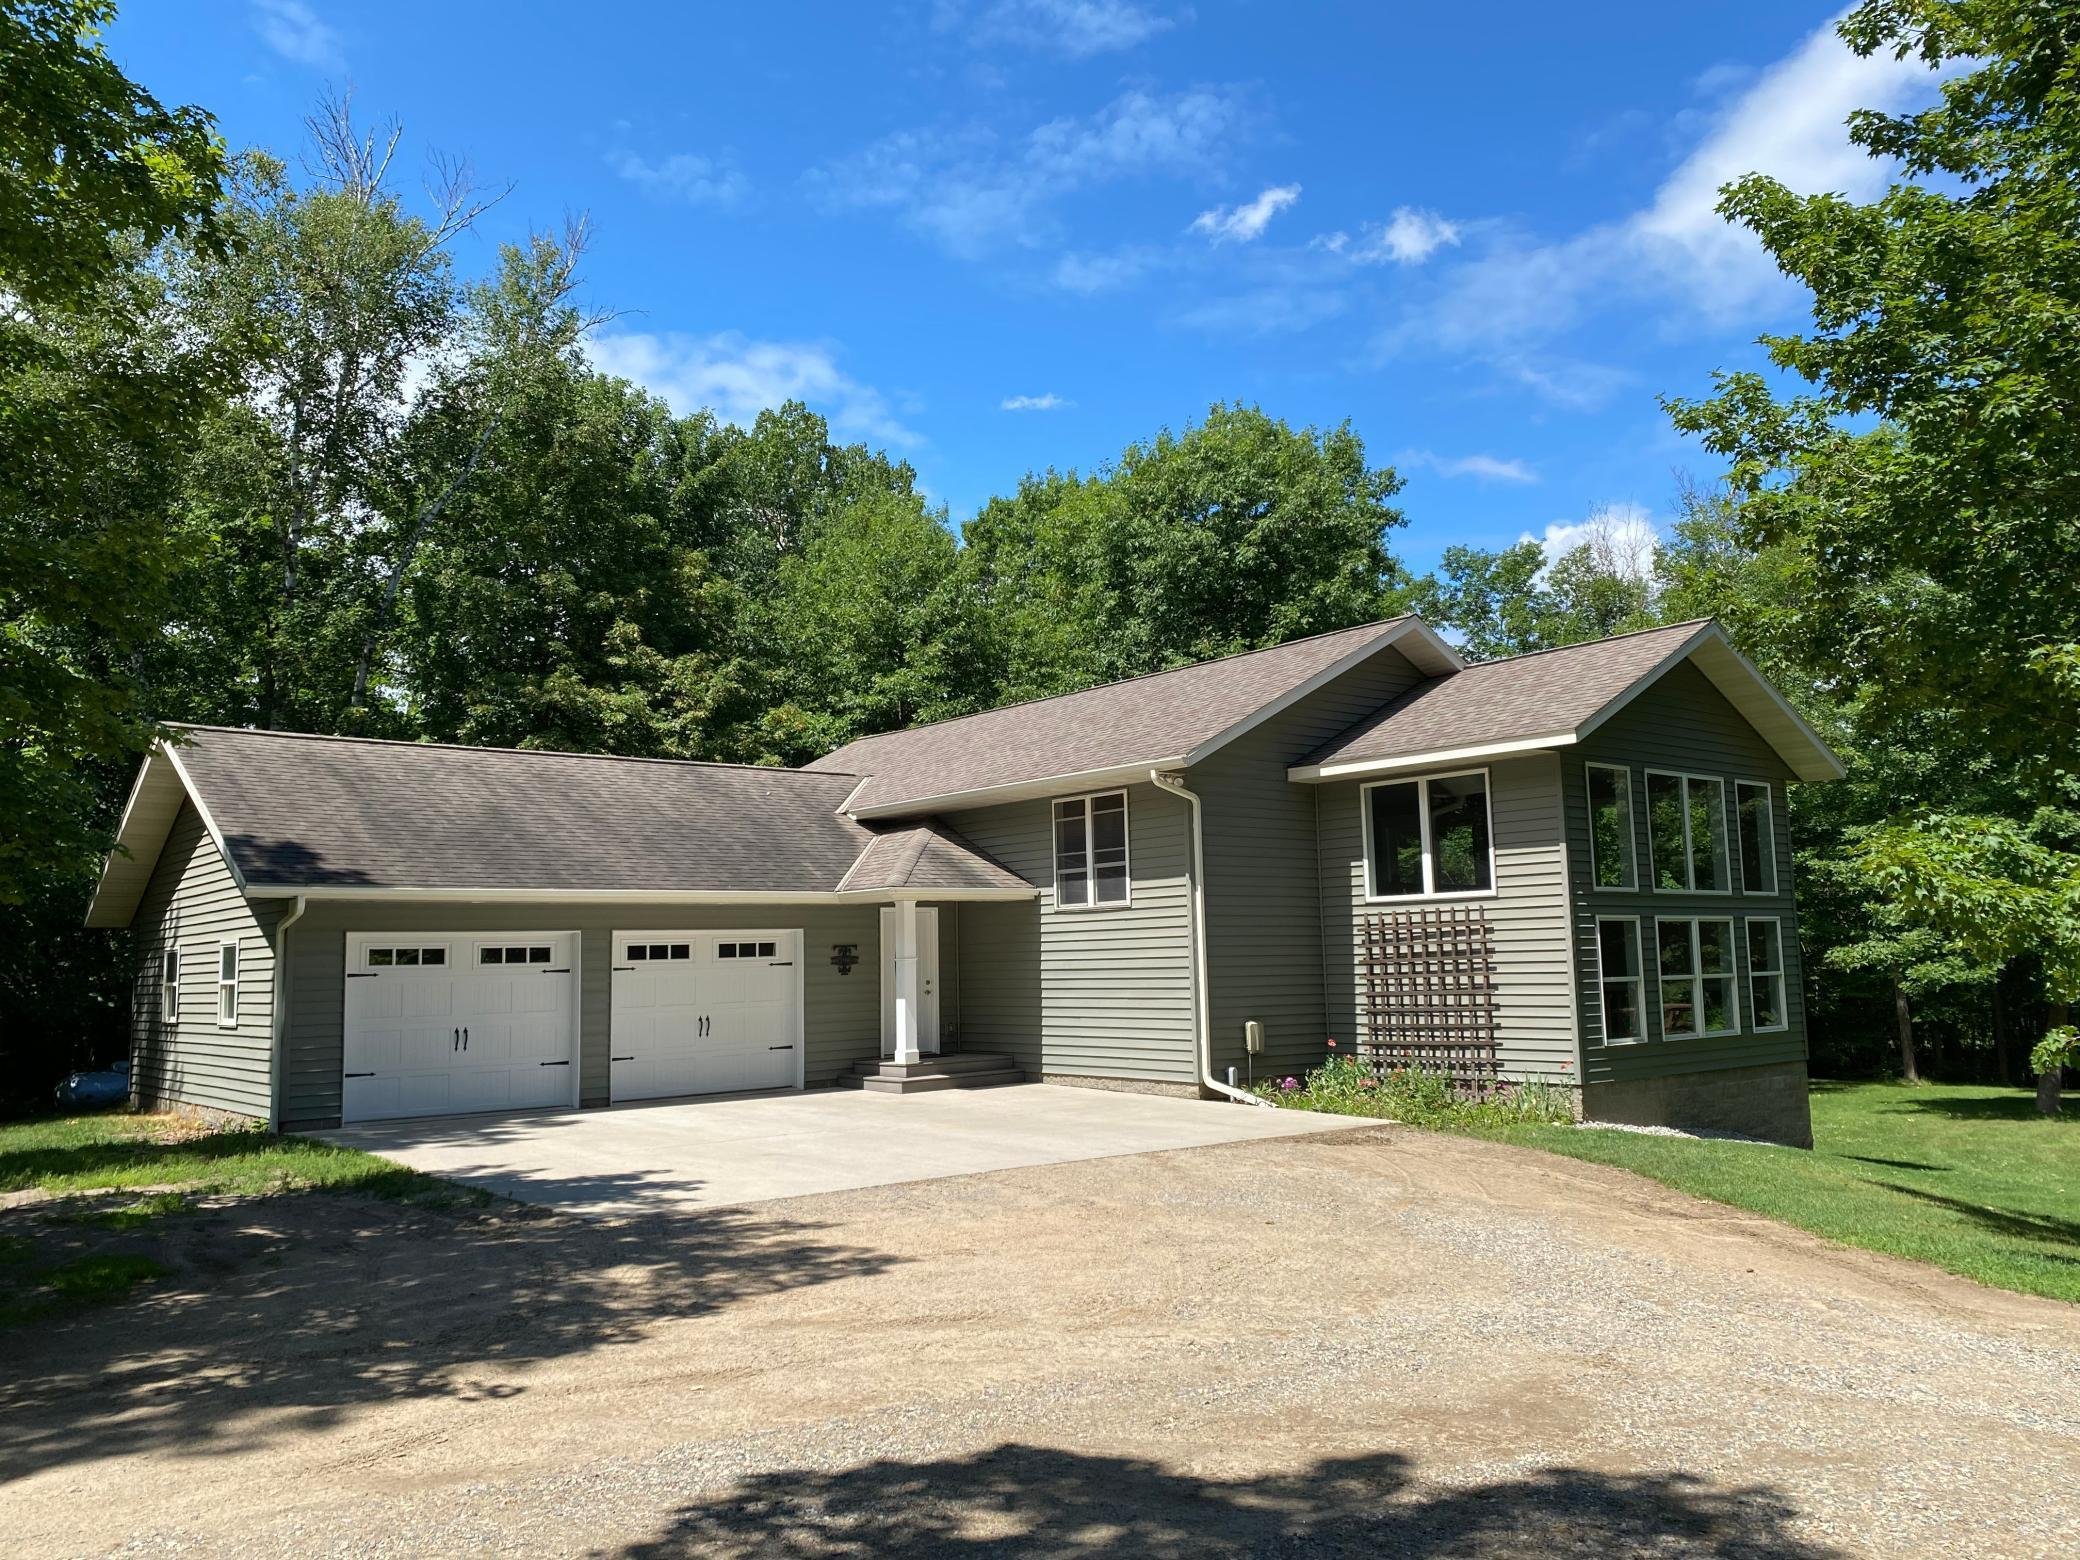 Super home with open floor plan that is a must see, vaulted ceilings, new appliances, newer deck, walkout patio, 2 garages, gardens, all minutes to Grand rapids. Very private spot near many lakes like Pokegama  chain.